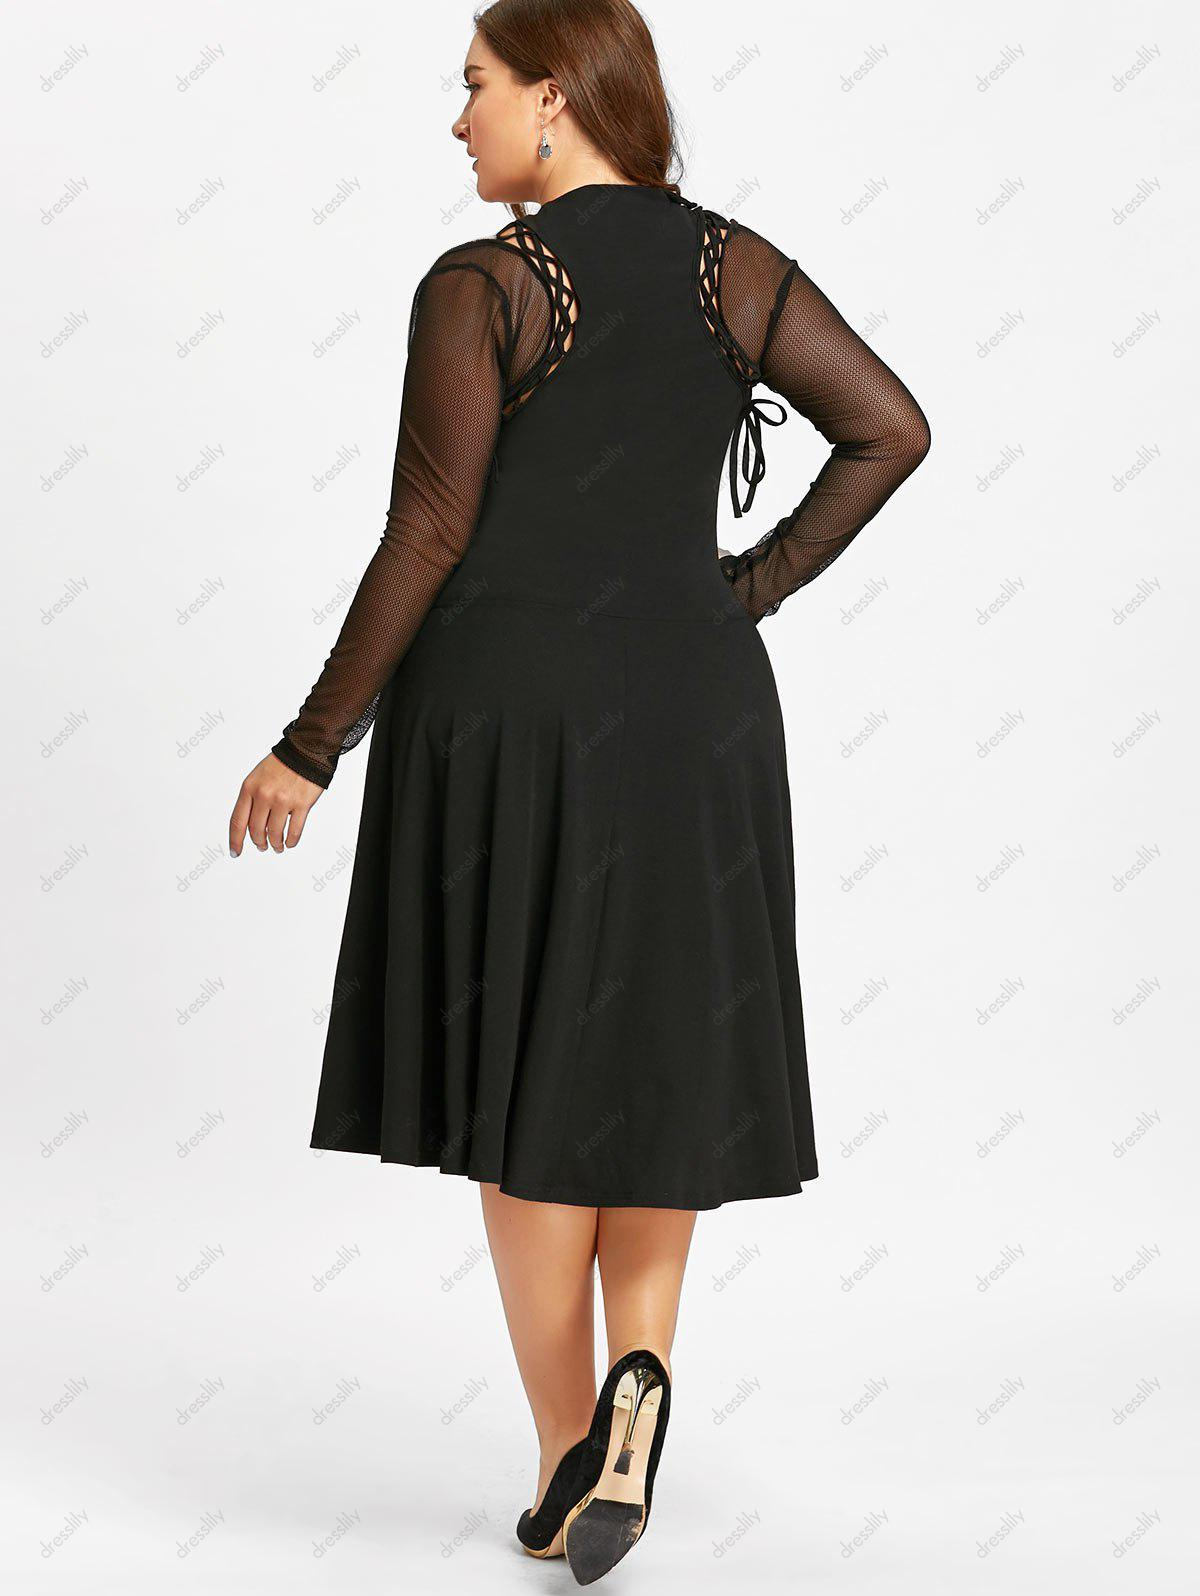 Plus Size Lace Up Cutout Gothic Dress - BLACK XL